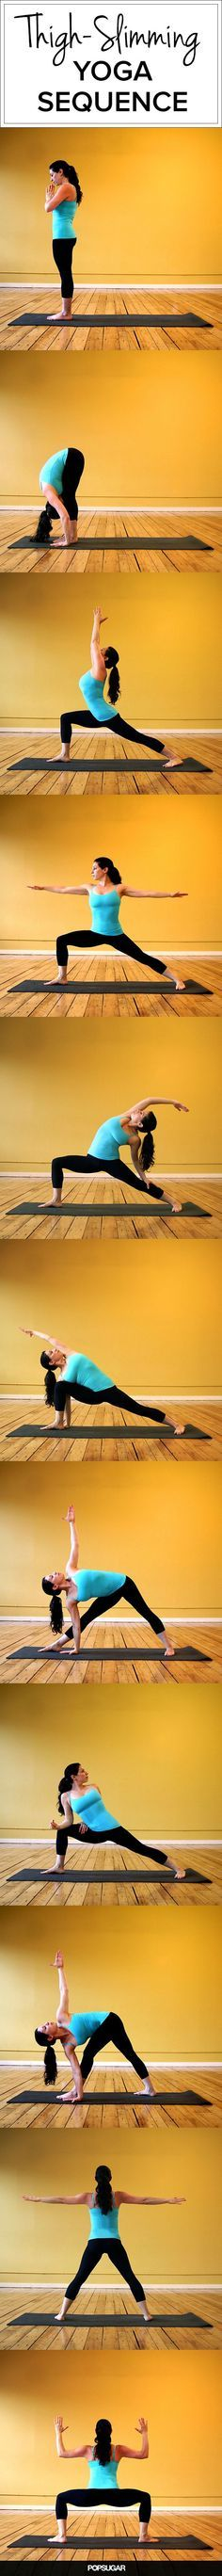 The triangle pose is helpful for strengthening your neck